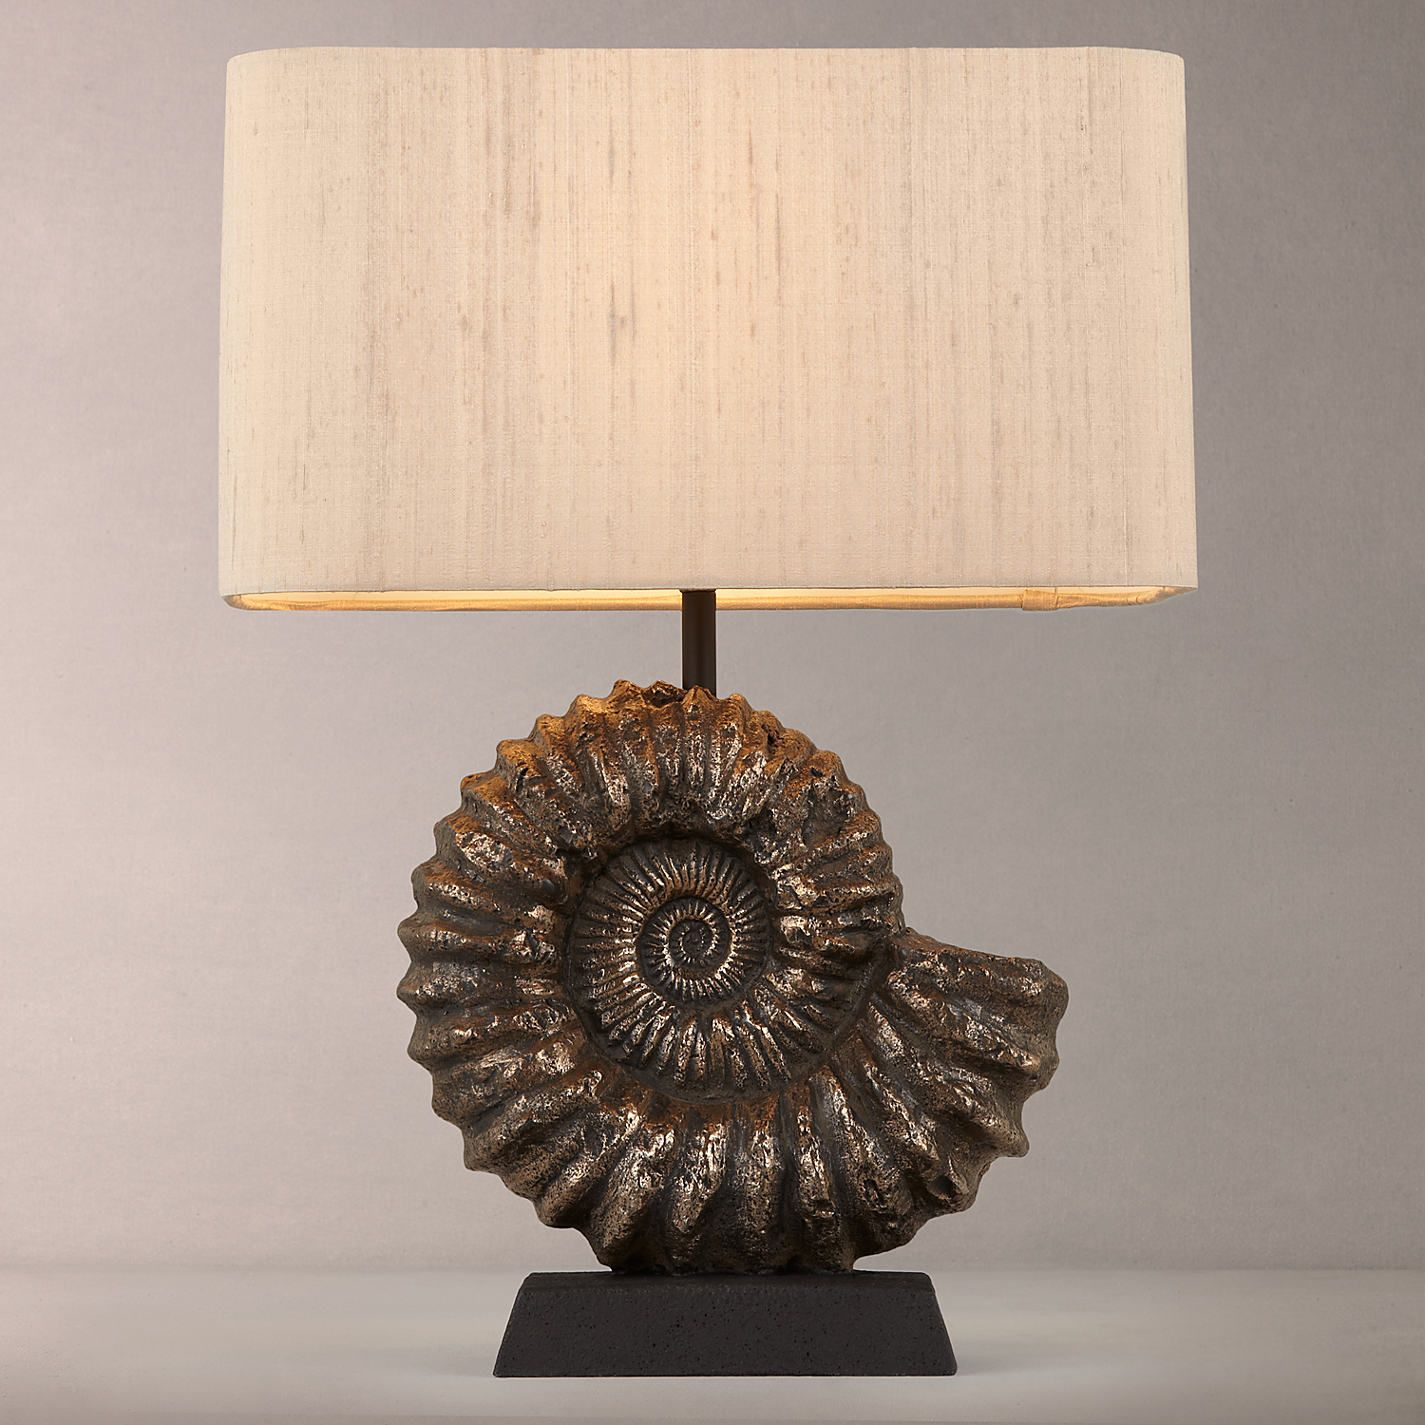 Buy david hunt ammonite table lamp from our table lamps range at buy david hunt ammonite table lamp from our table lamps range at john lewis free aloadofball Choice Image